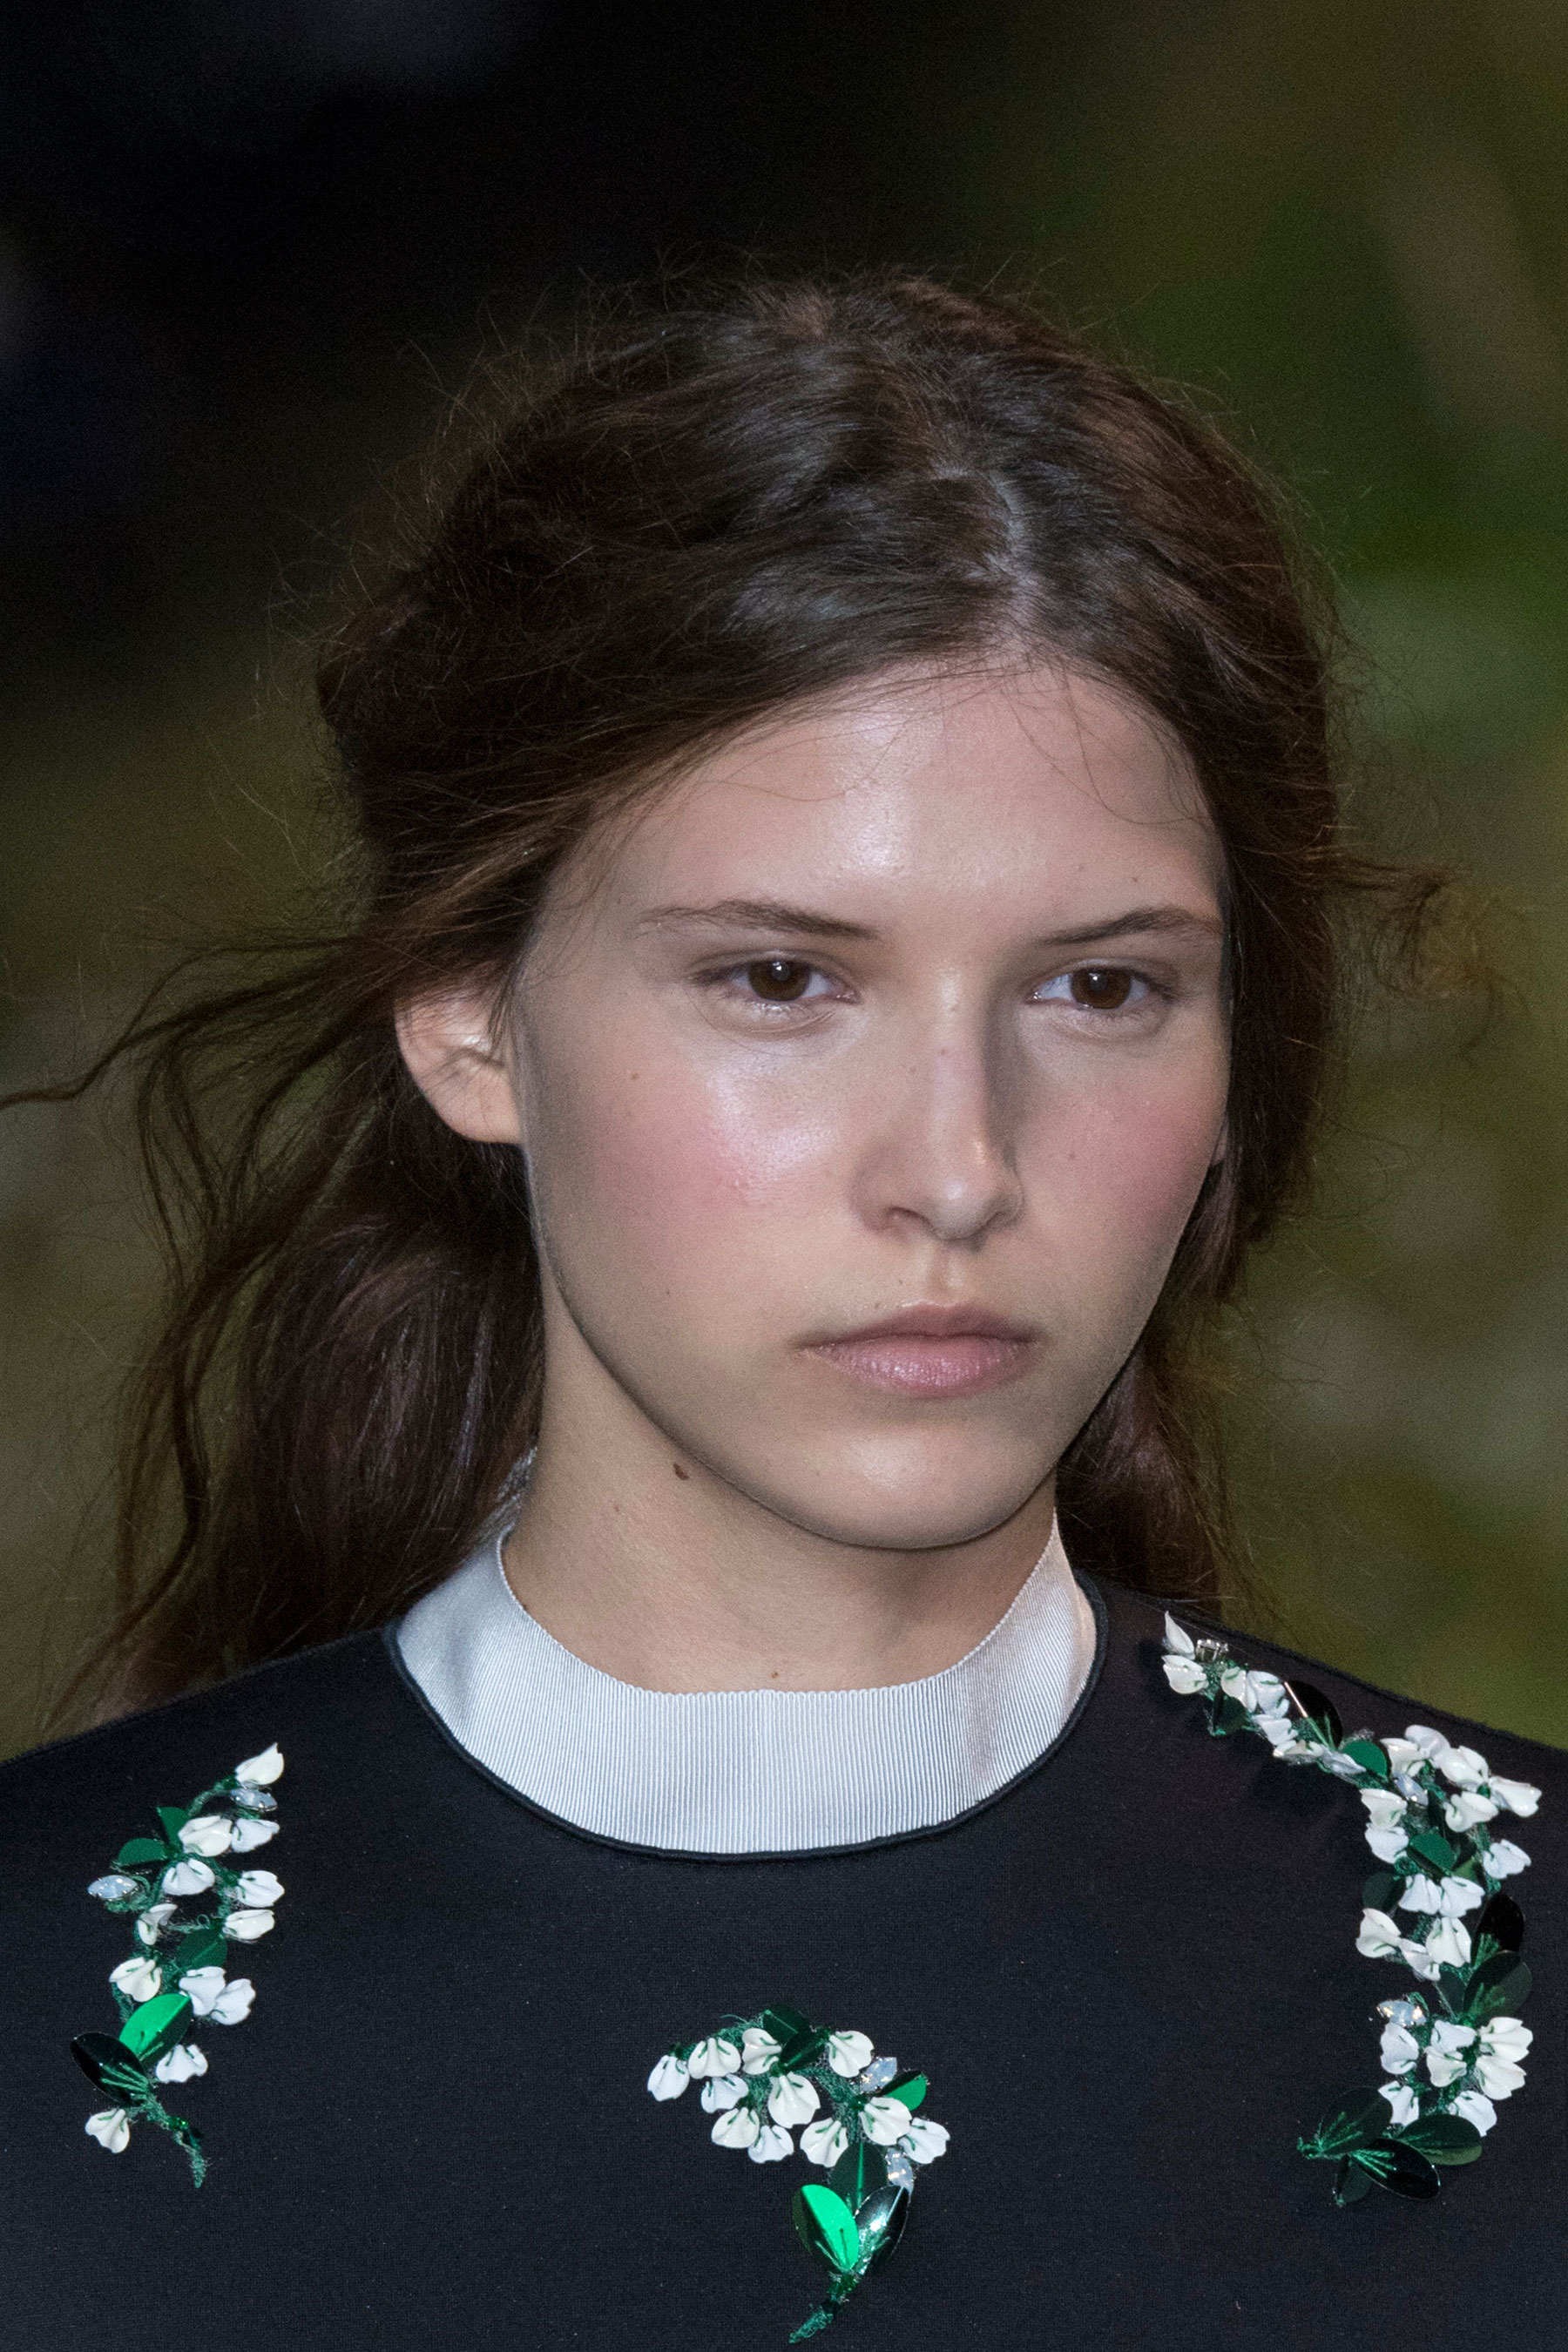 Moncler-Gamme-Rouge-spring-2016-runway-beauty-fashion-show-the-impression-40